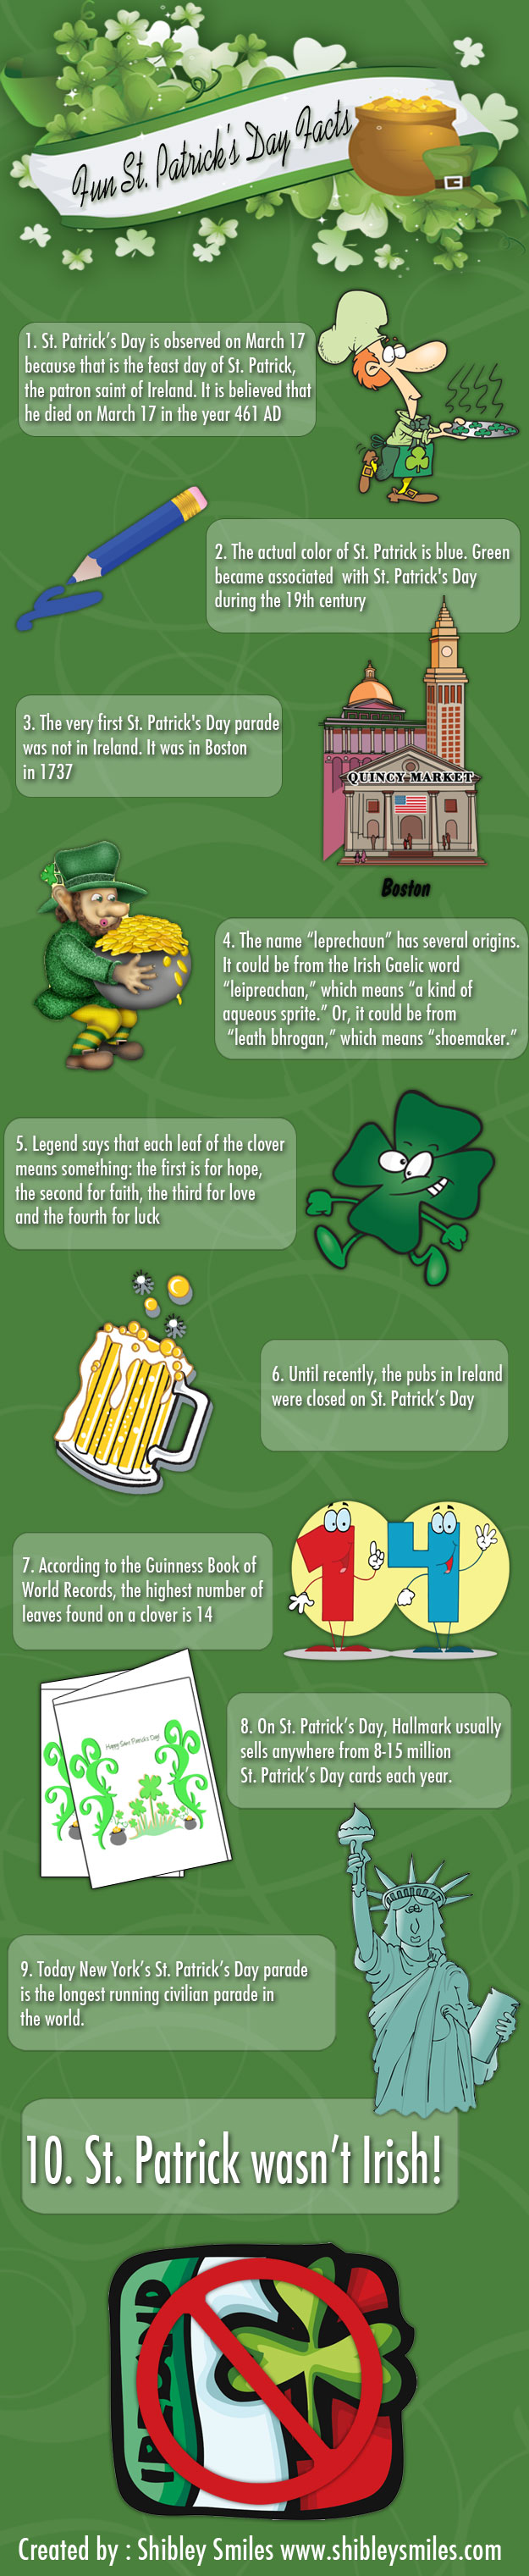 Fun St. Patrick's Day Facts